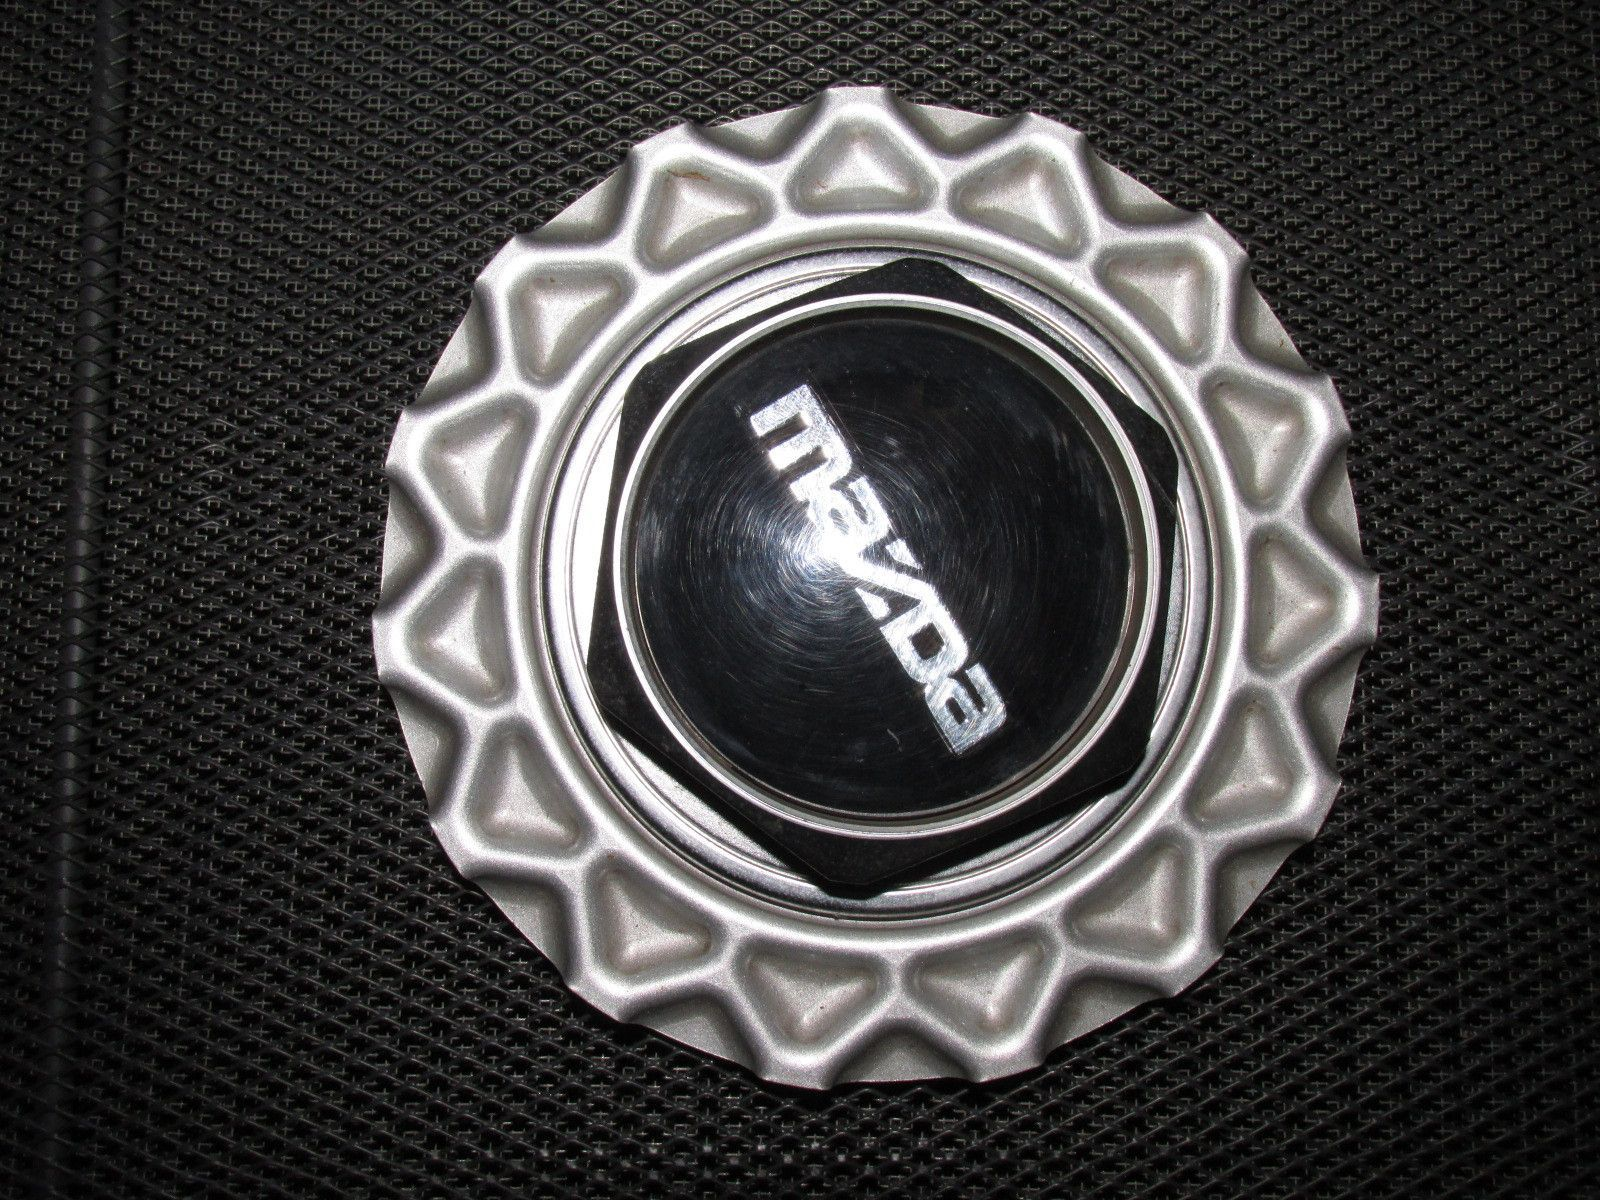 b5a60d8b5f979677ea4011c7afbdf93c Great Description About Mazda Badge with Breathtaking Pictures Cars Review